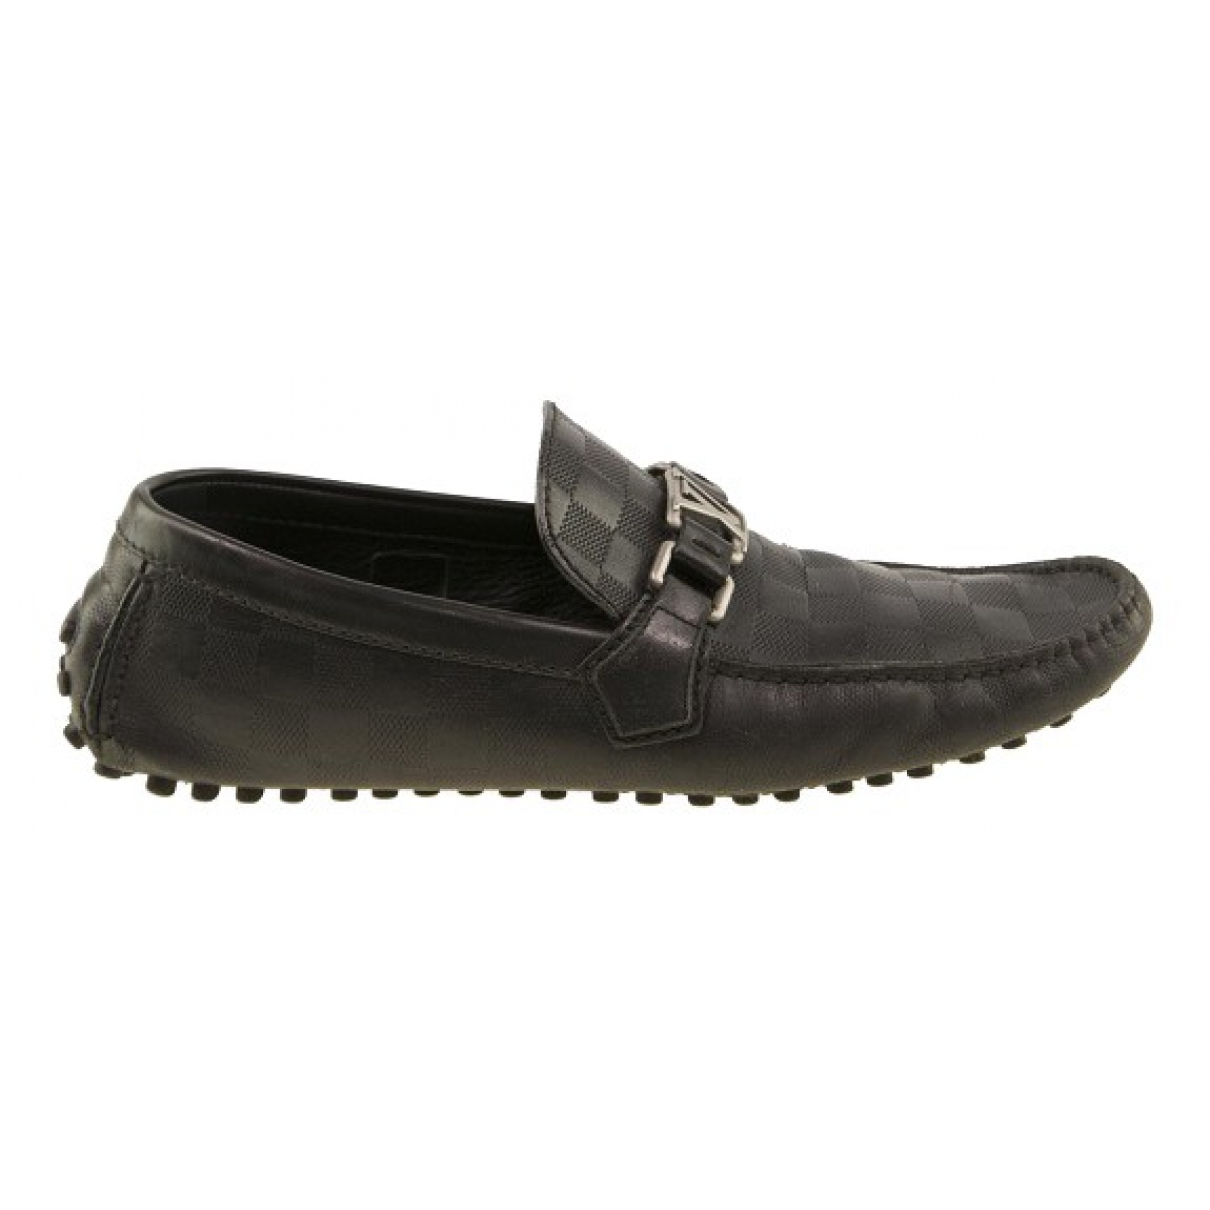 Louis Vuitton Hockenheim Black Leather Flats for Men 8 US